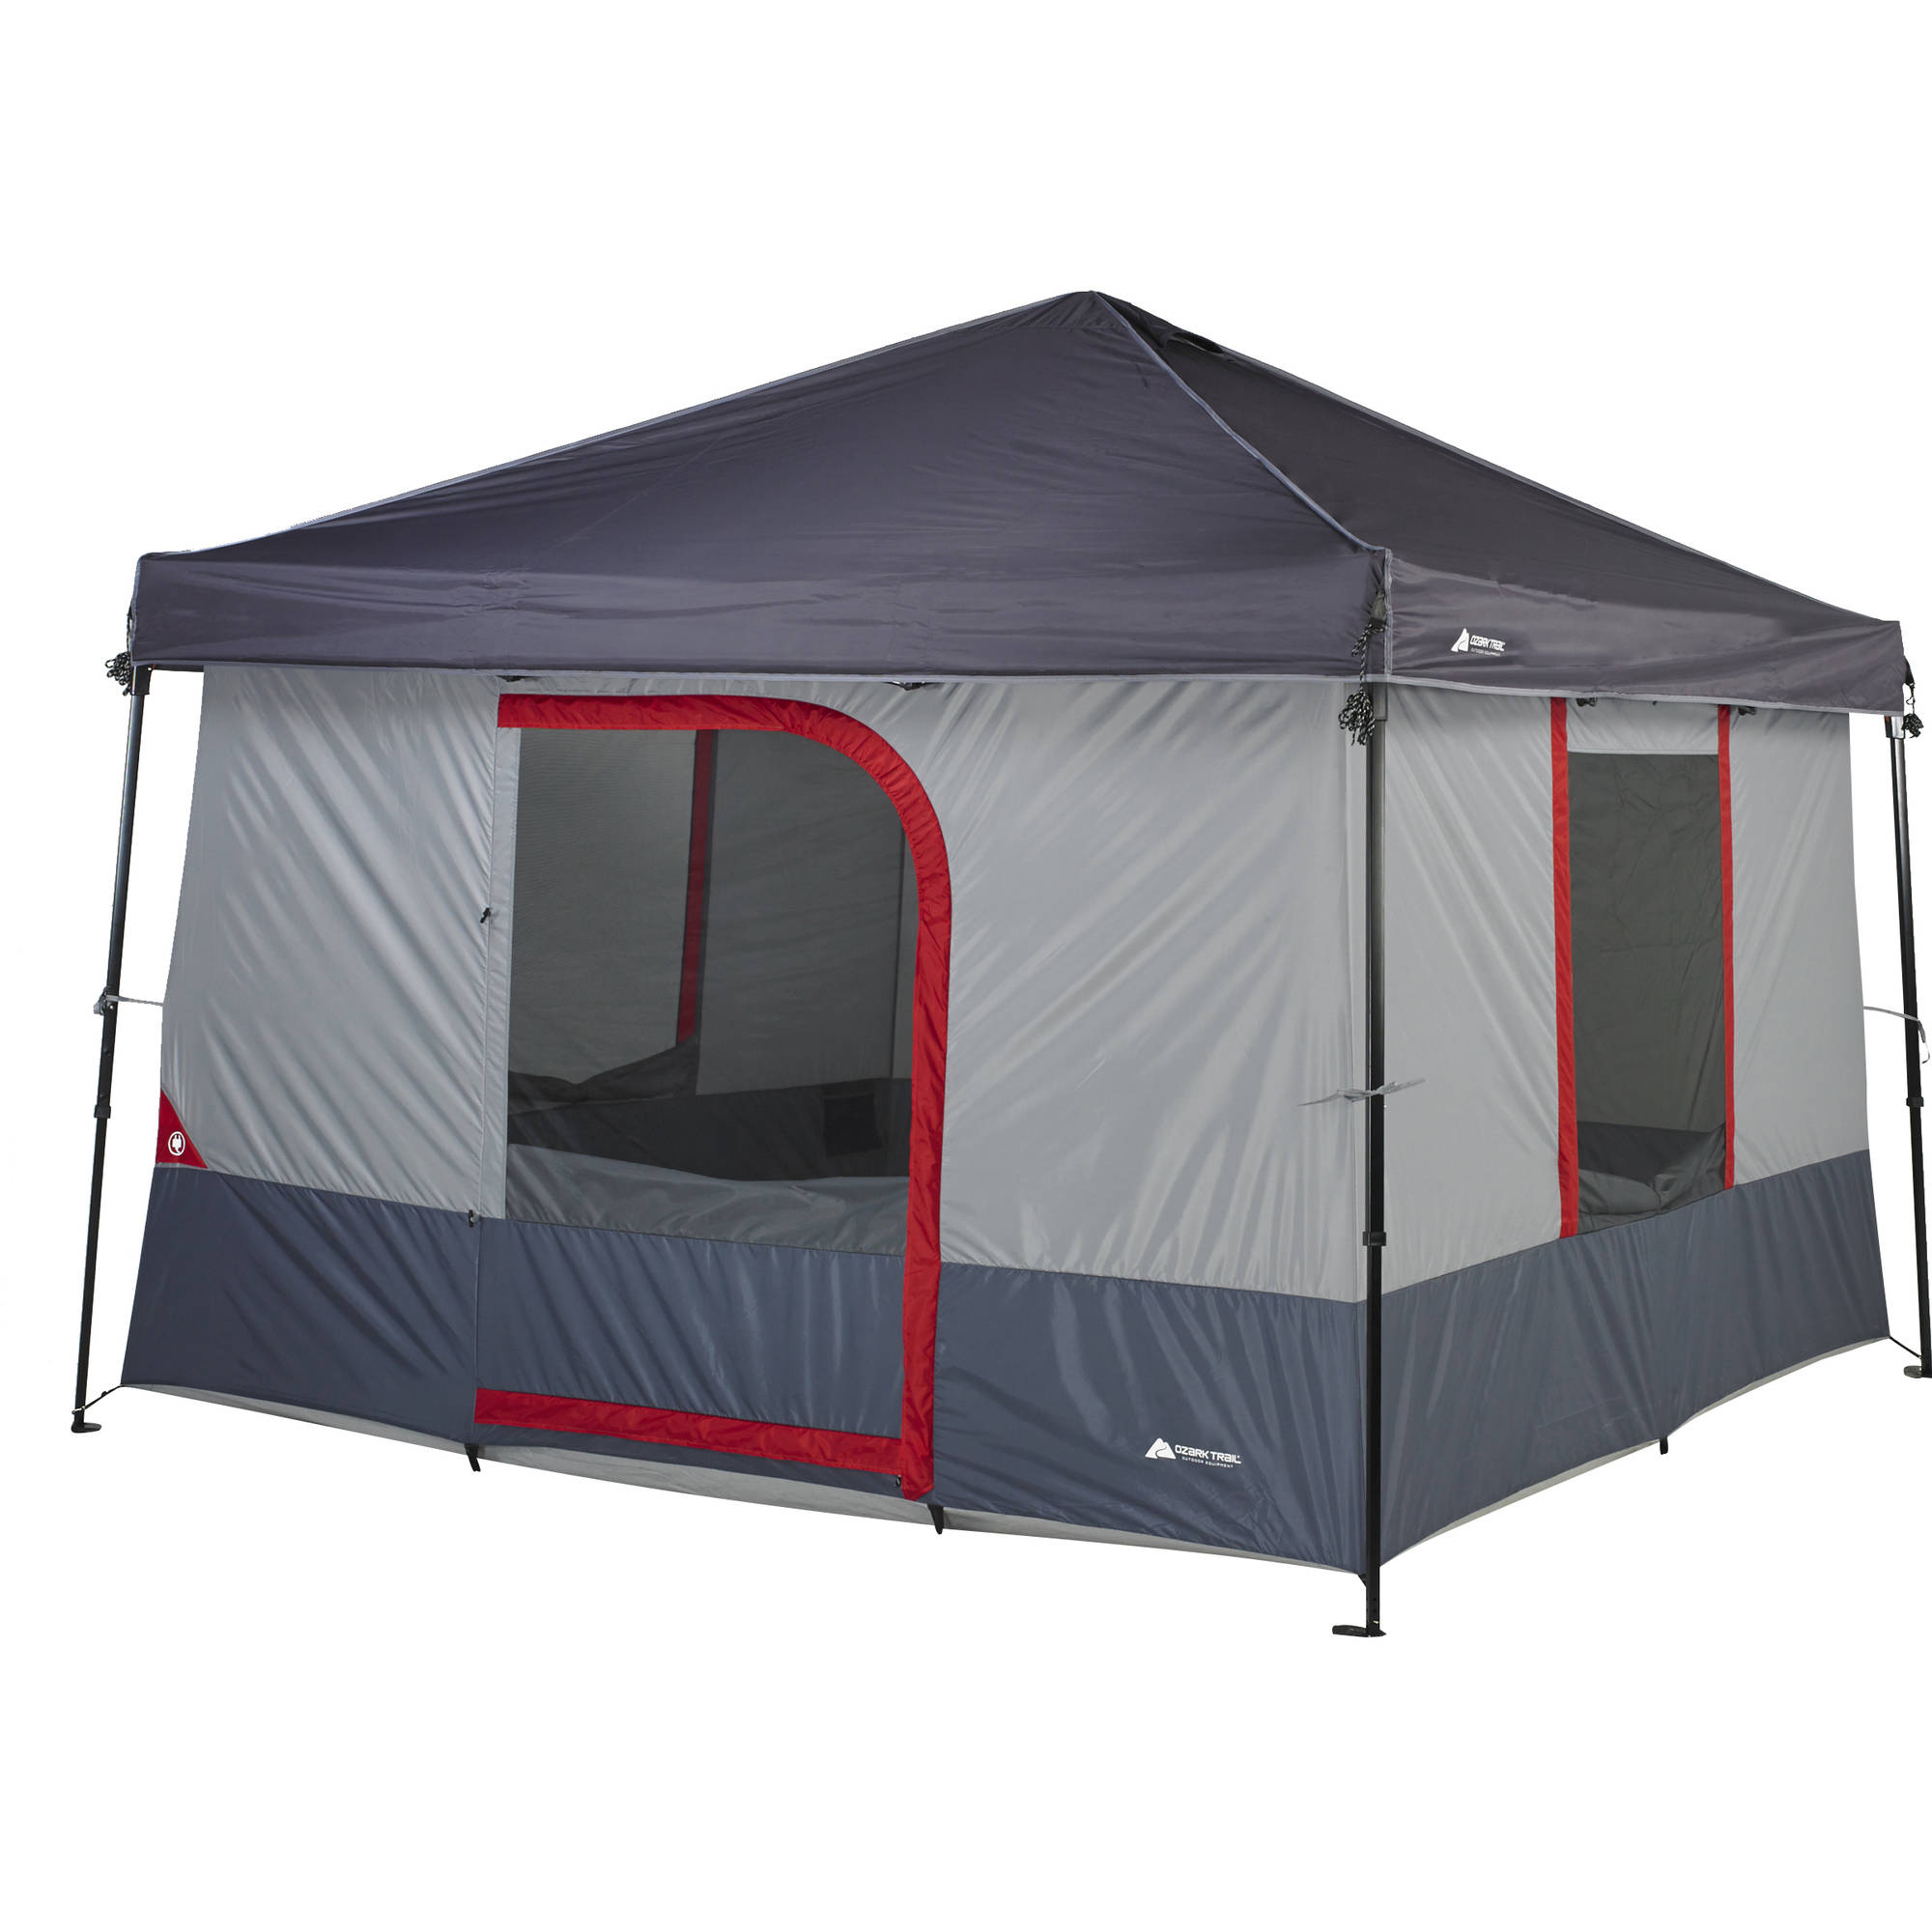 Benifits of having canopy tent